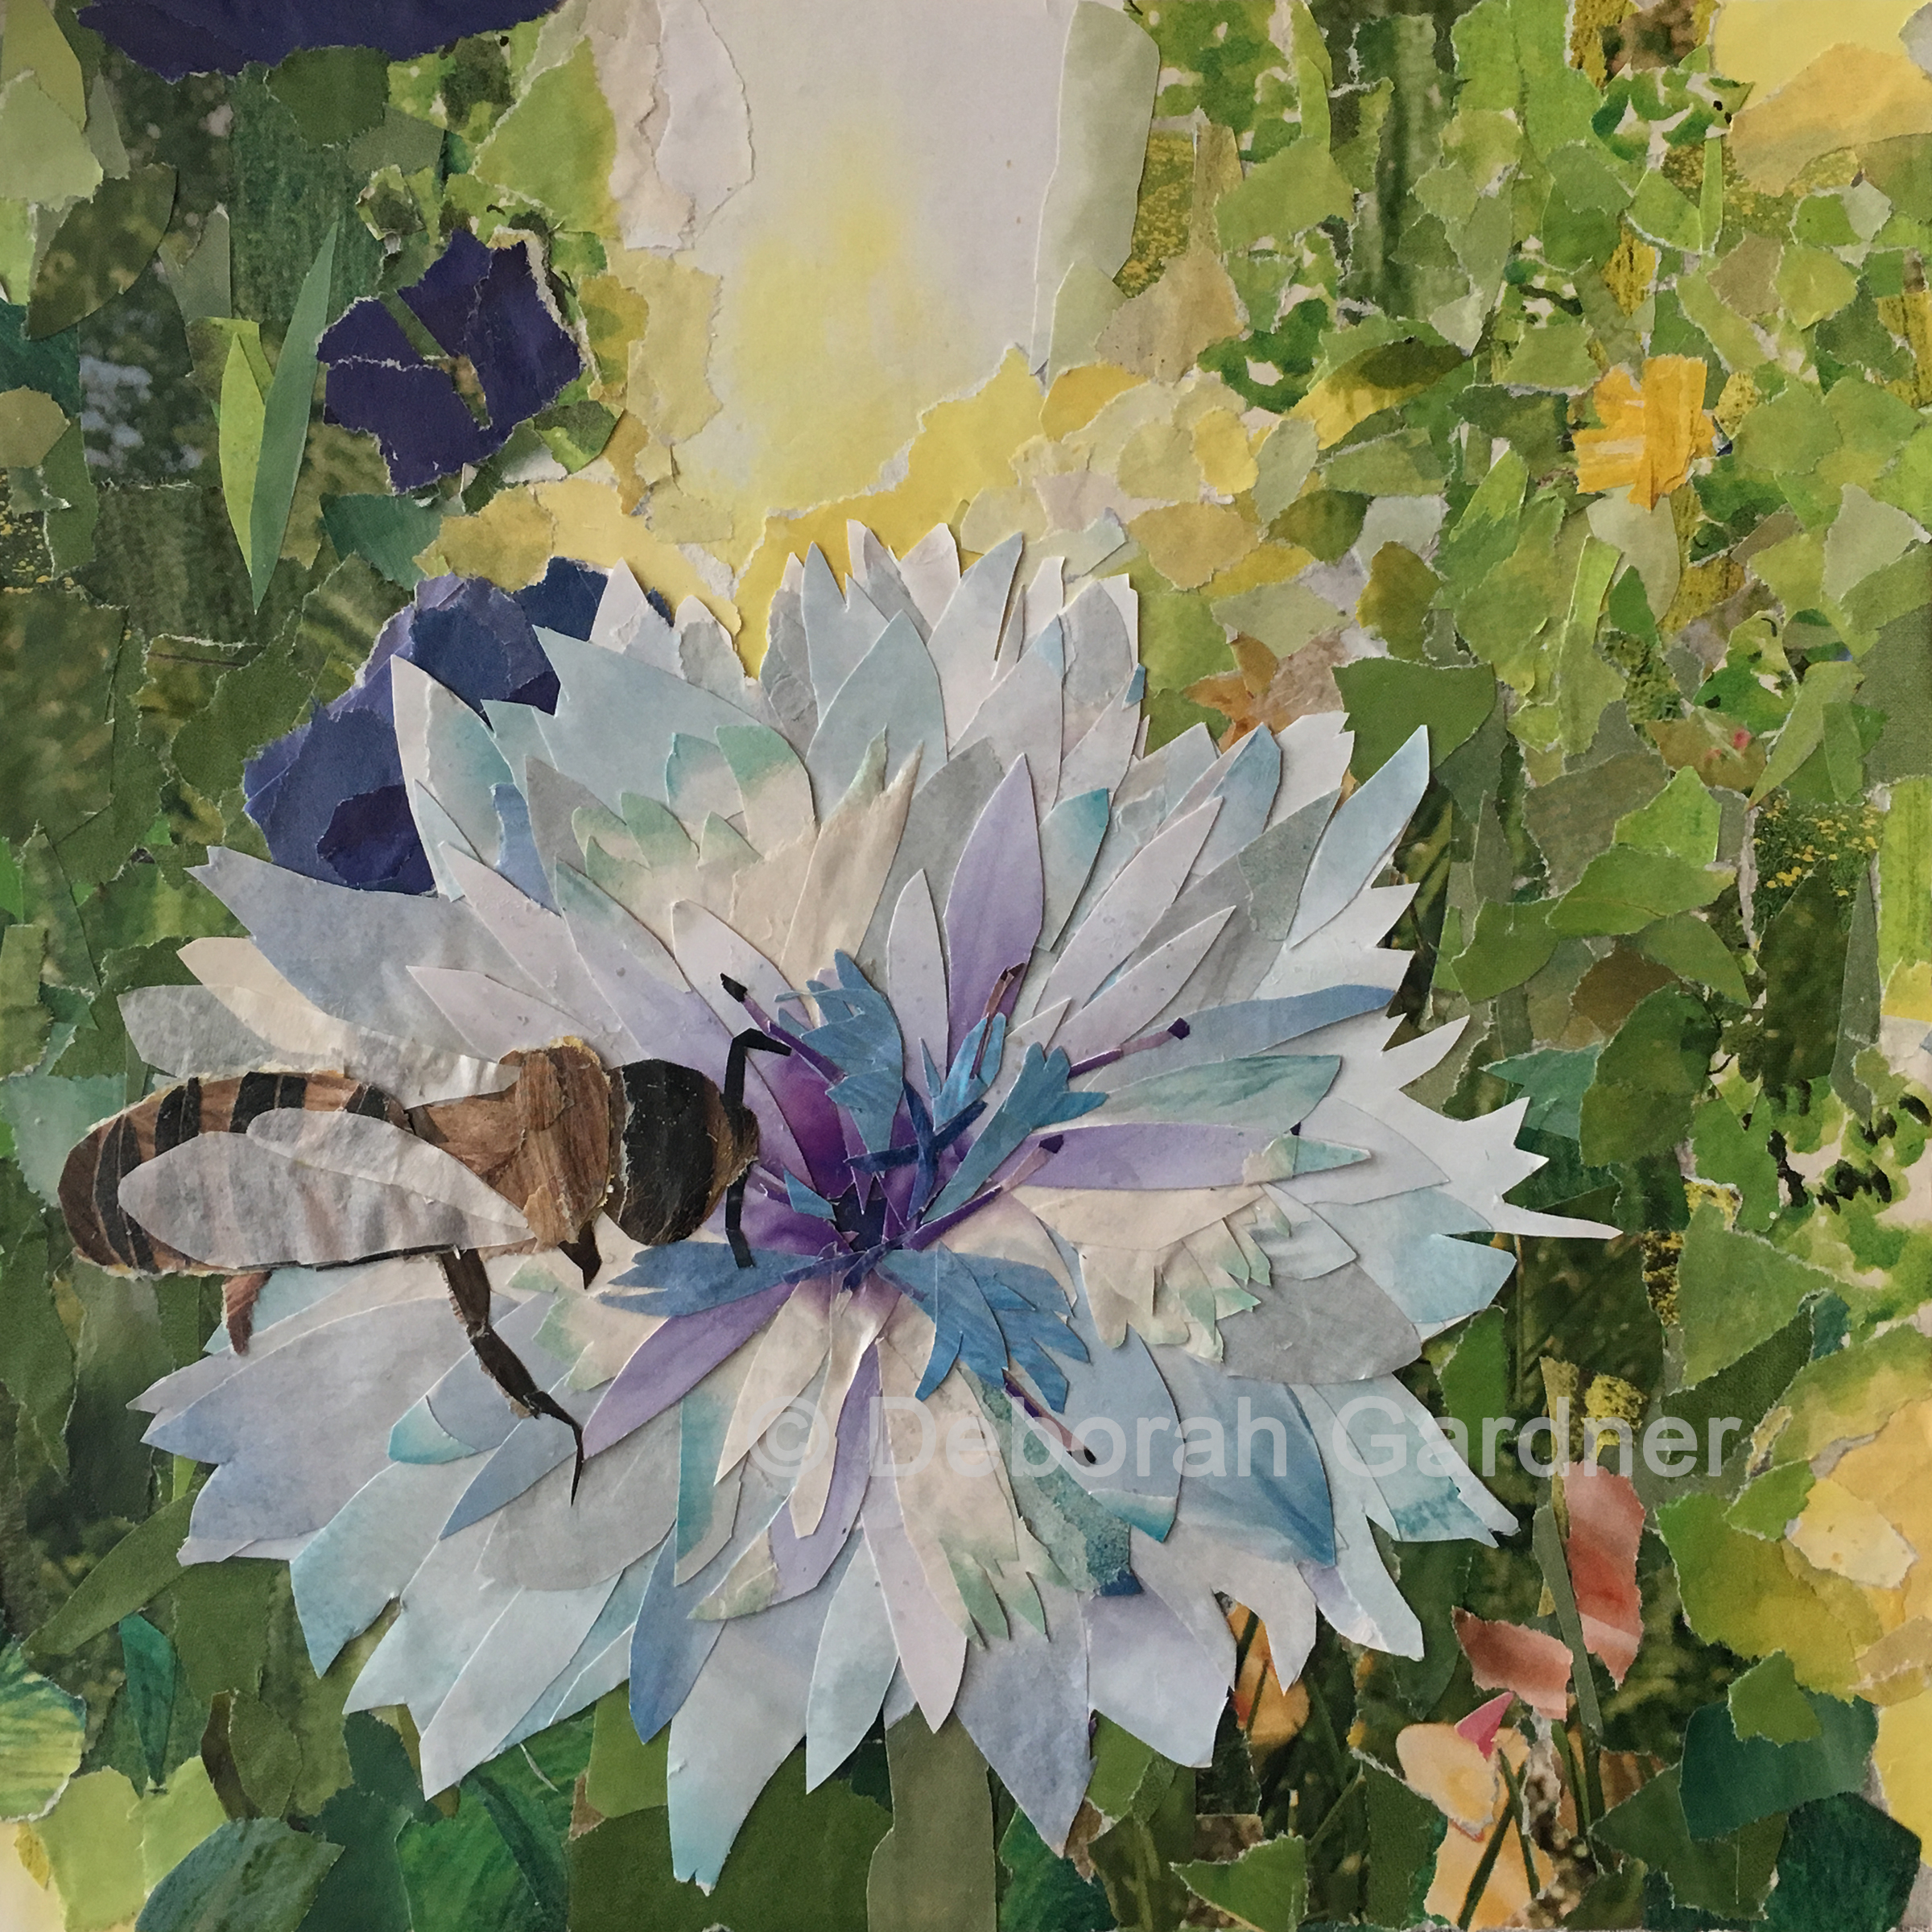 A collage depiction of a bee on a flower in an impressionist garden